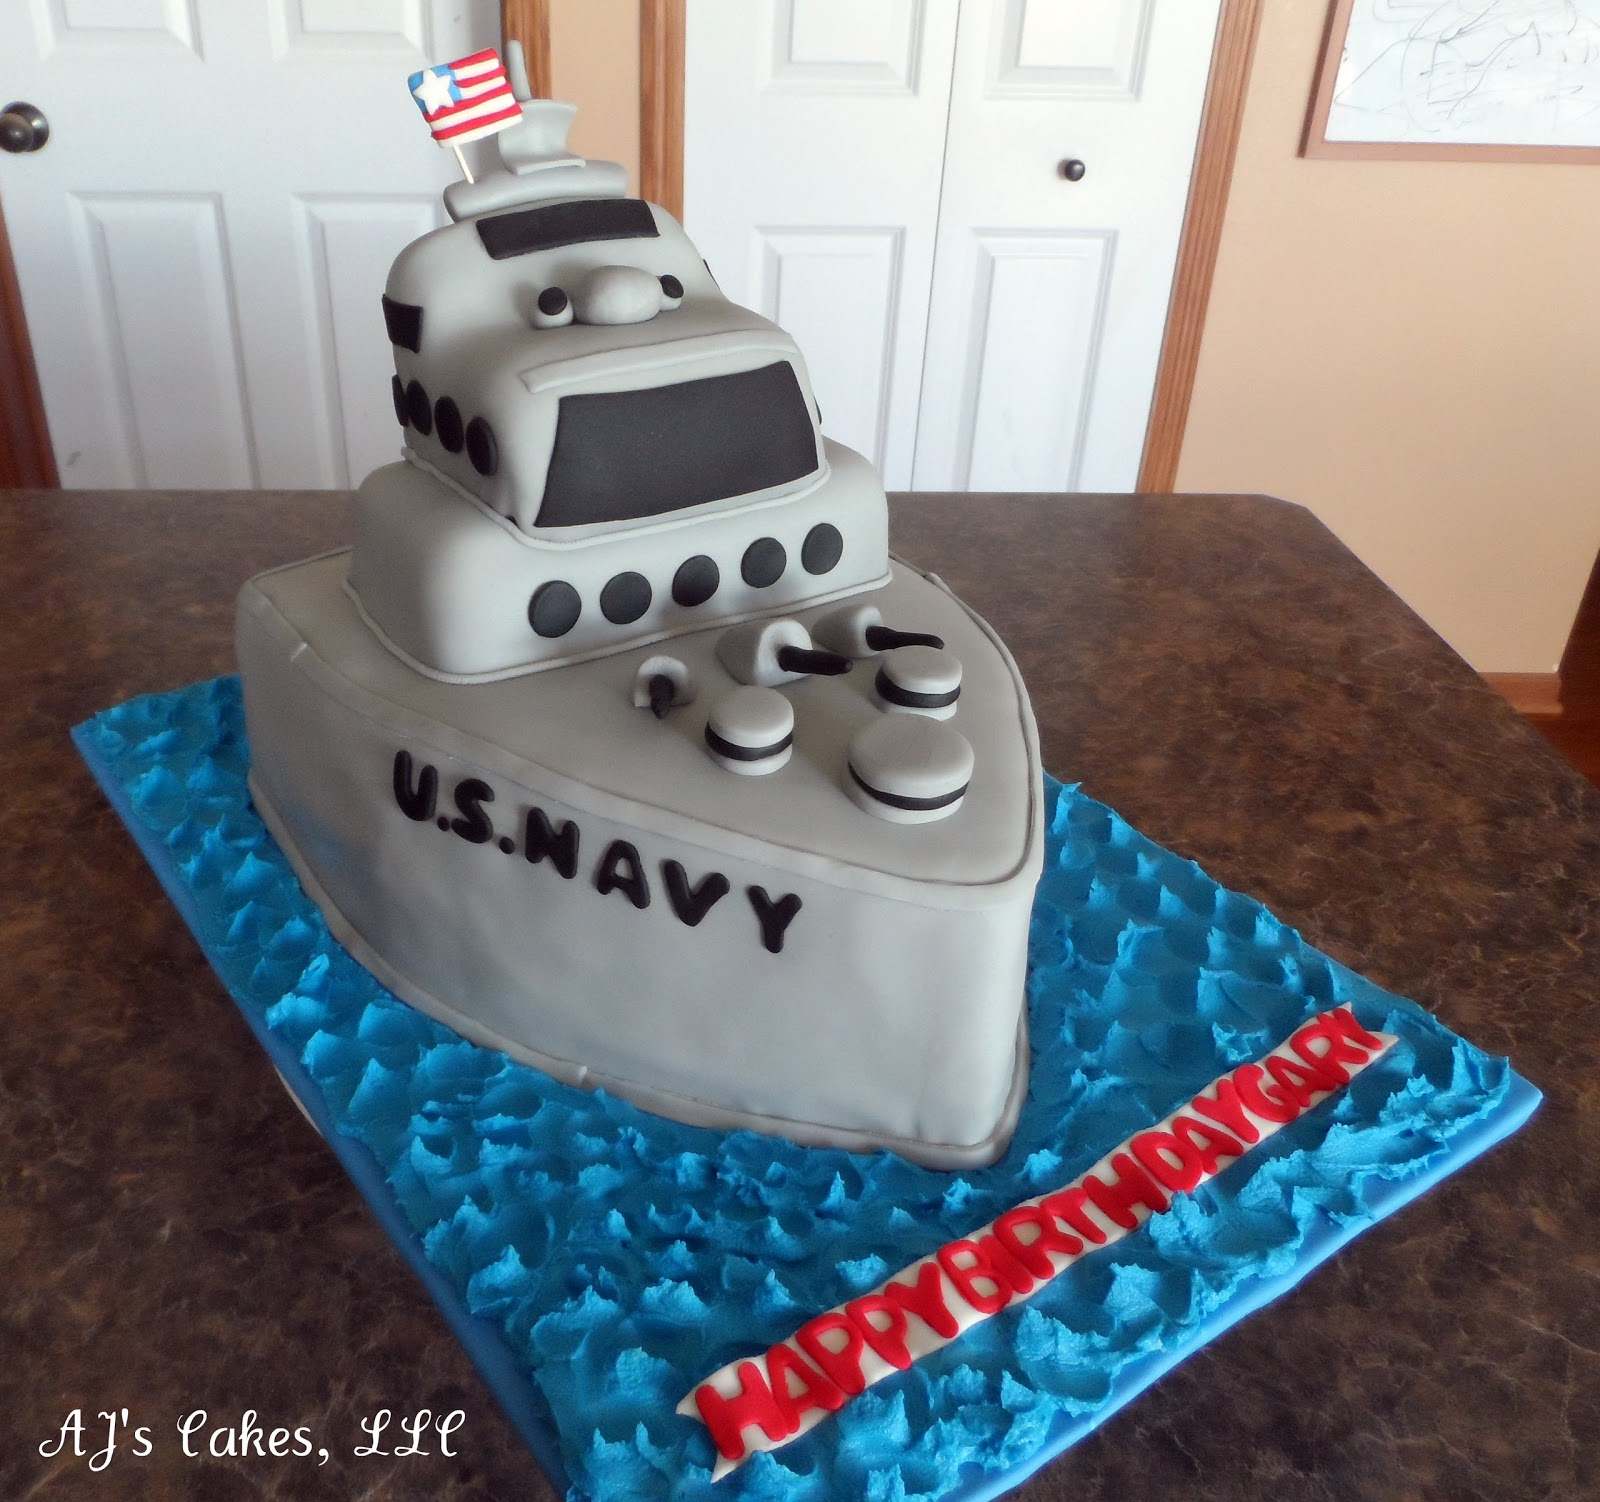 30 Amazing Image of Navy Birthday Cake